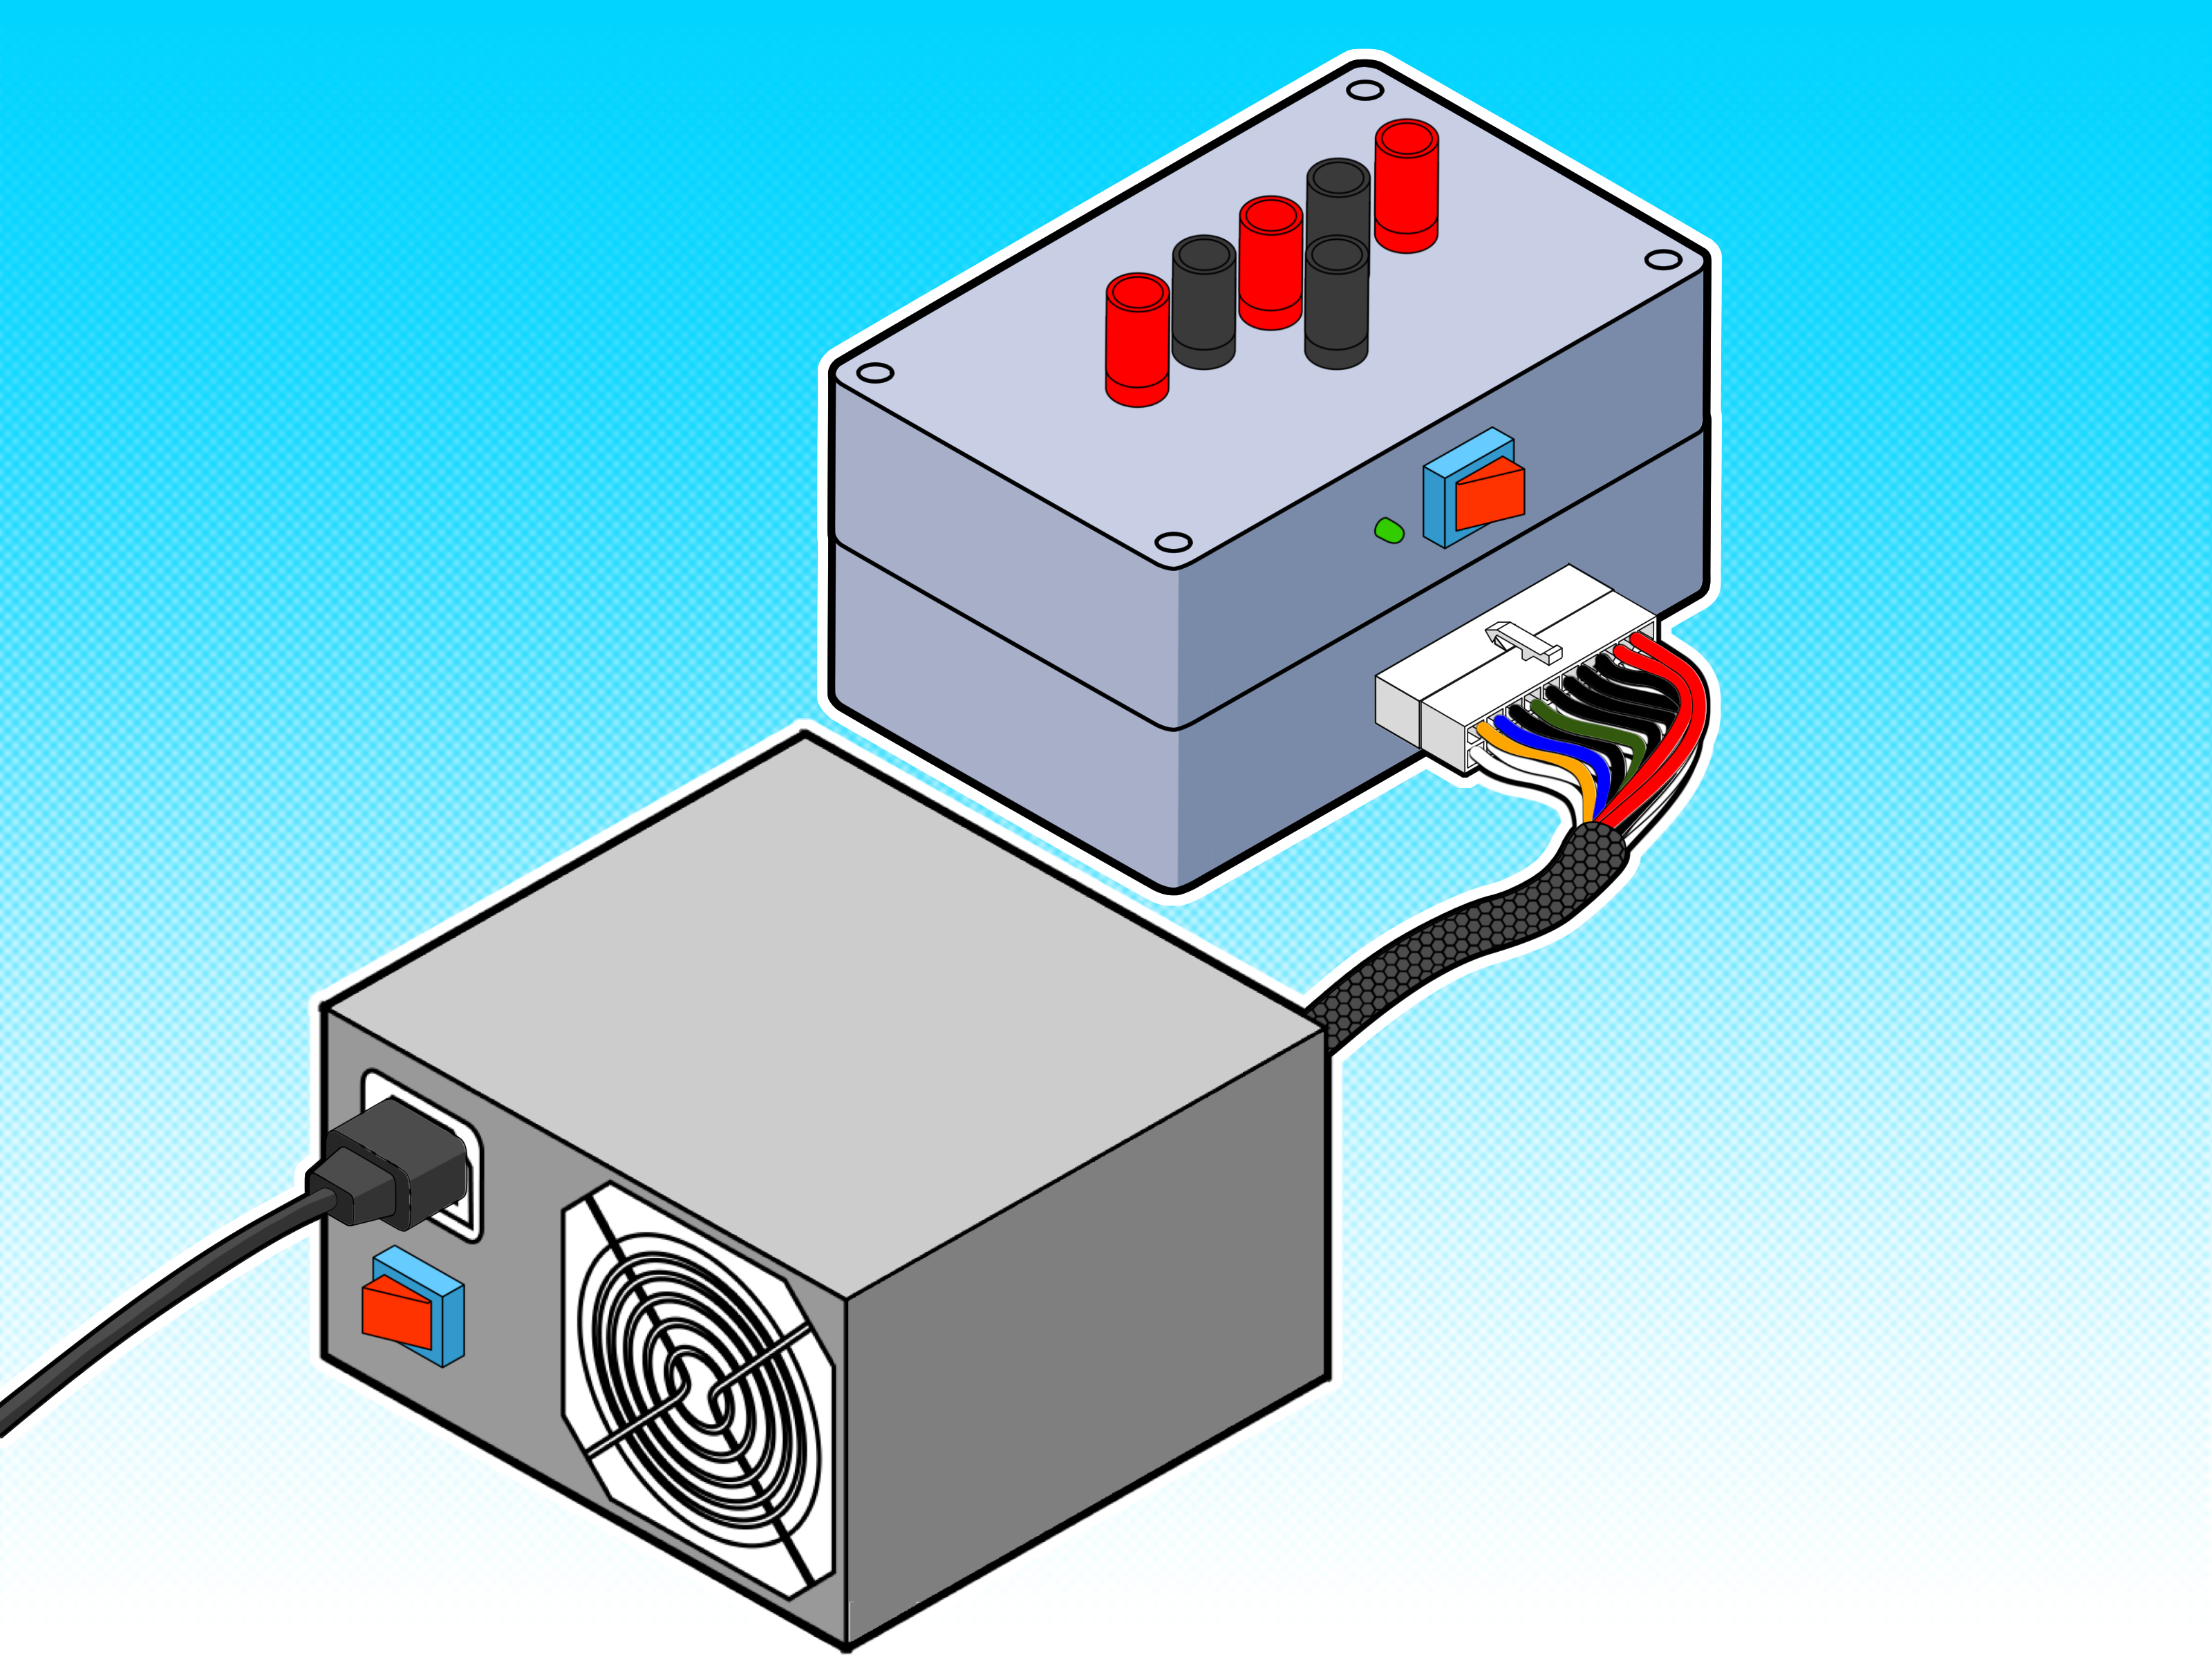 Groovy How To Create A 12 Volt Dc Test Bench For Bullet Cameras Using An Wiring Cloud Uslyletkolfr09Org